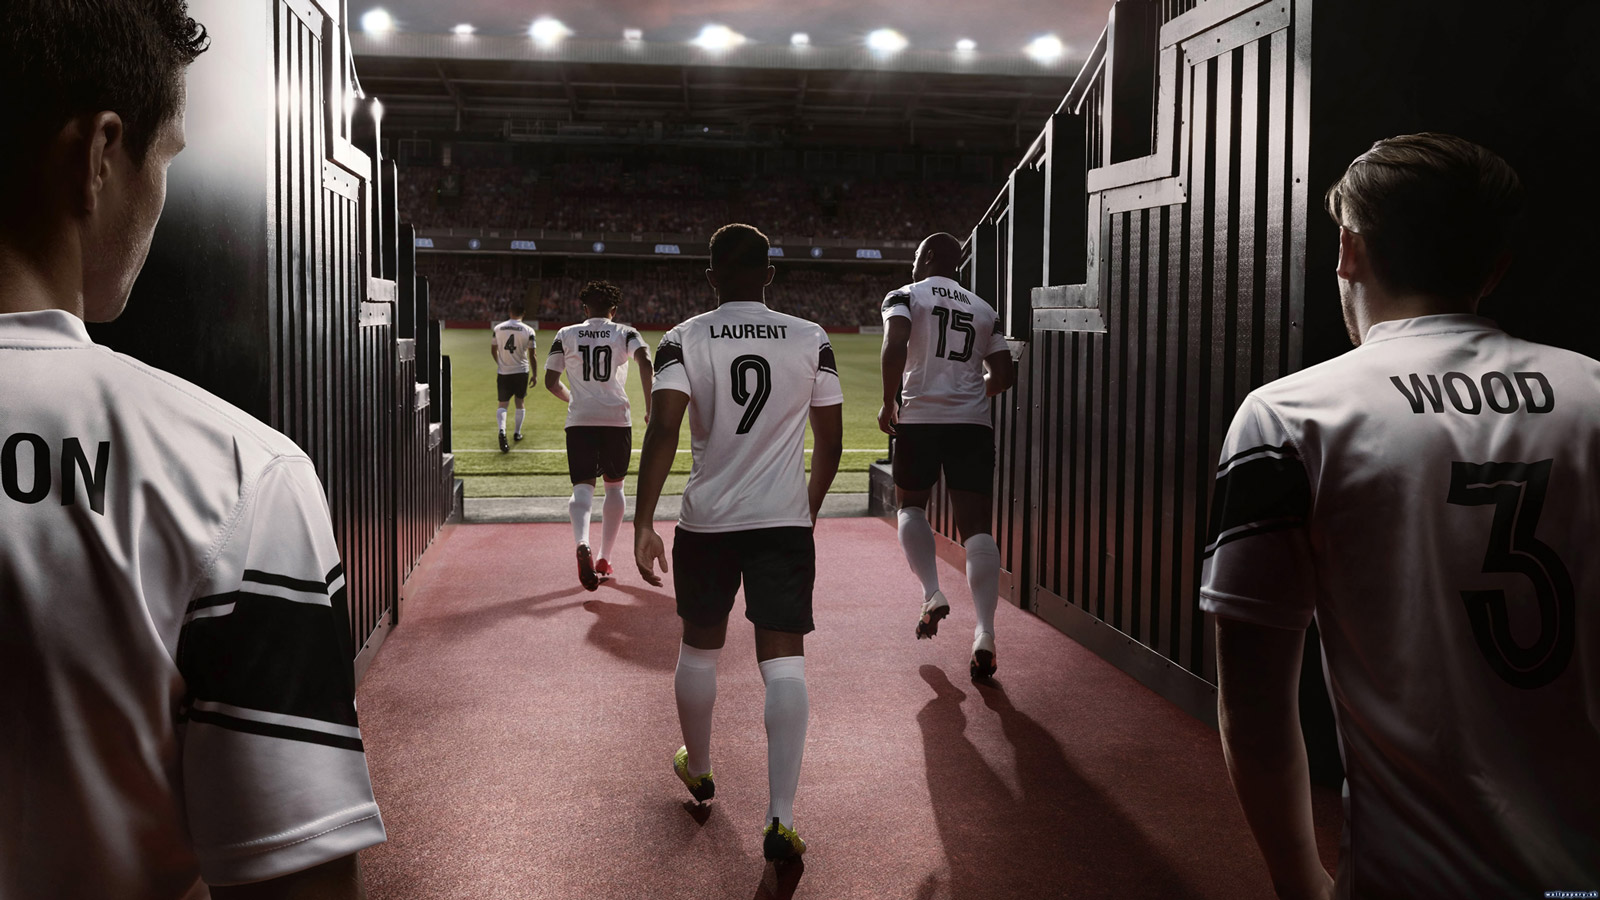 Free Football Manager 2019 Wallpaper in 1600x900